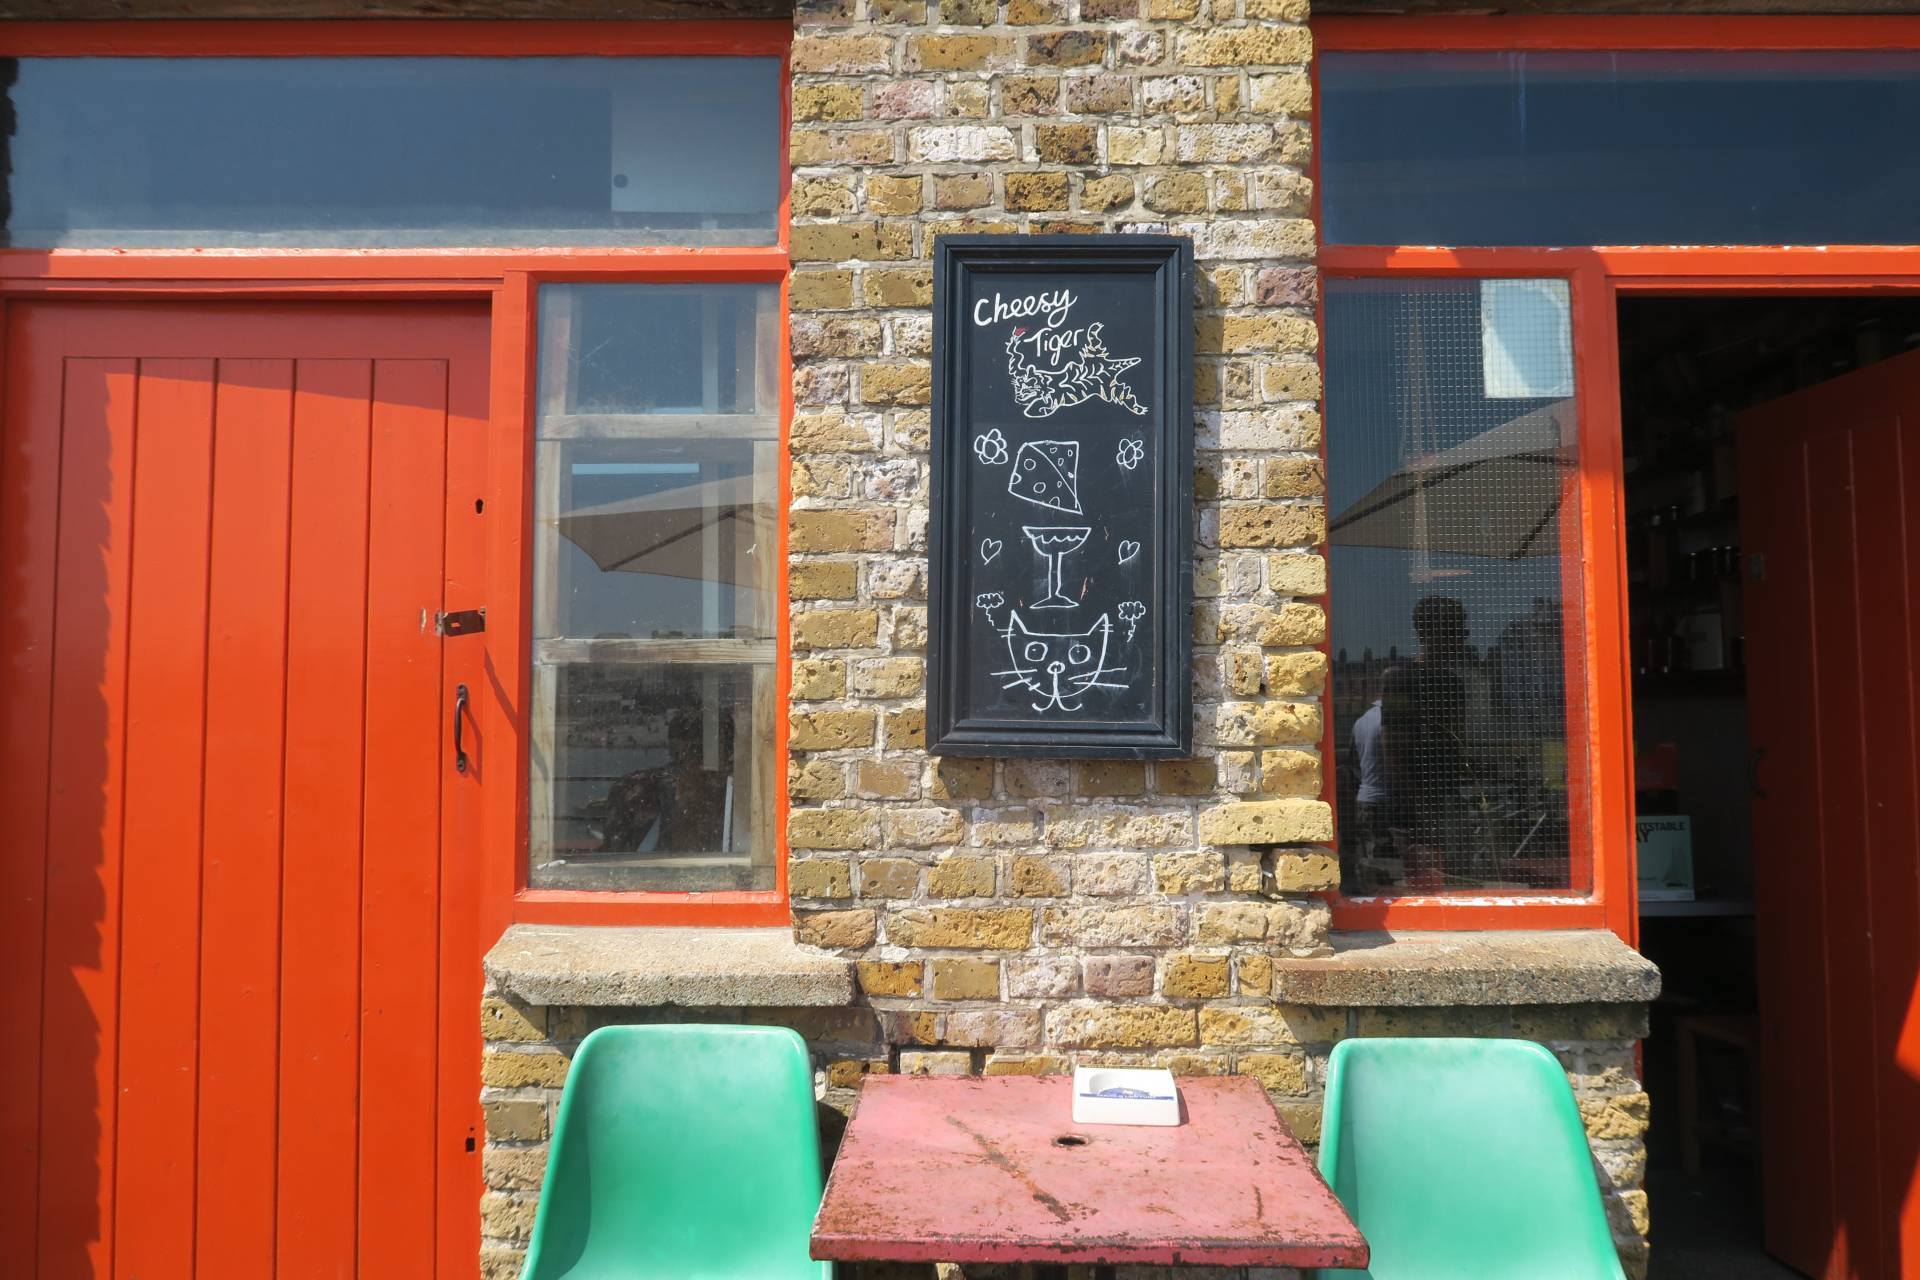 Where to eat in Margate